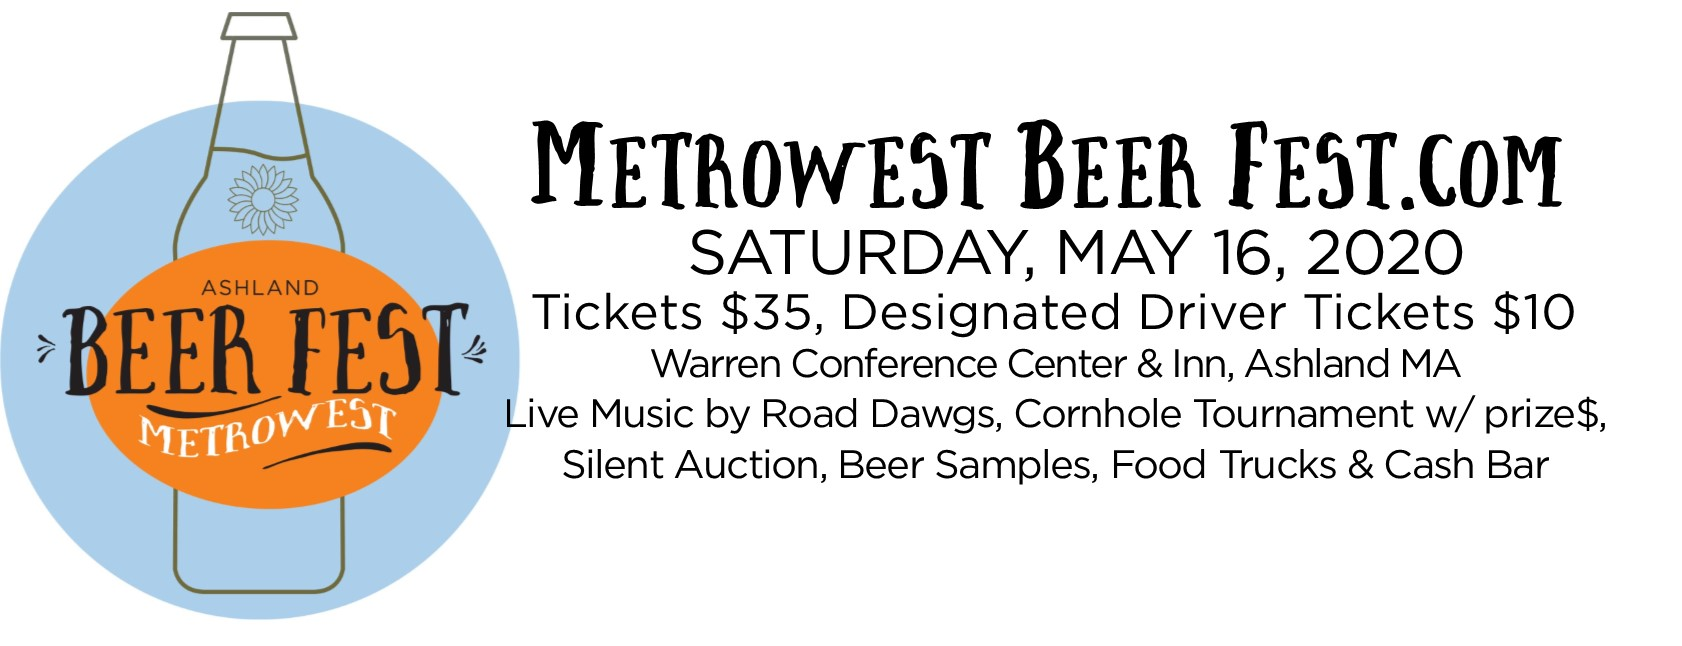 Tickets for MetroWest Beer Fest in Ashland from BeerFests.com